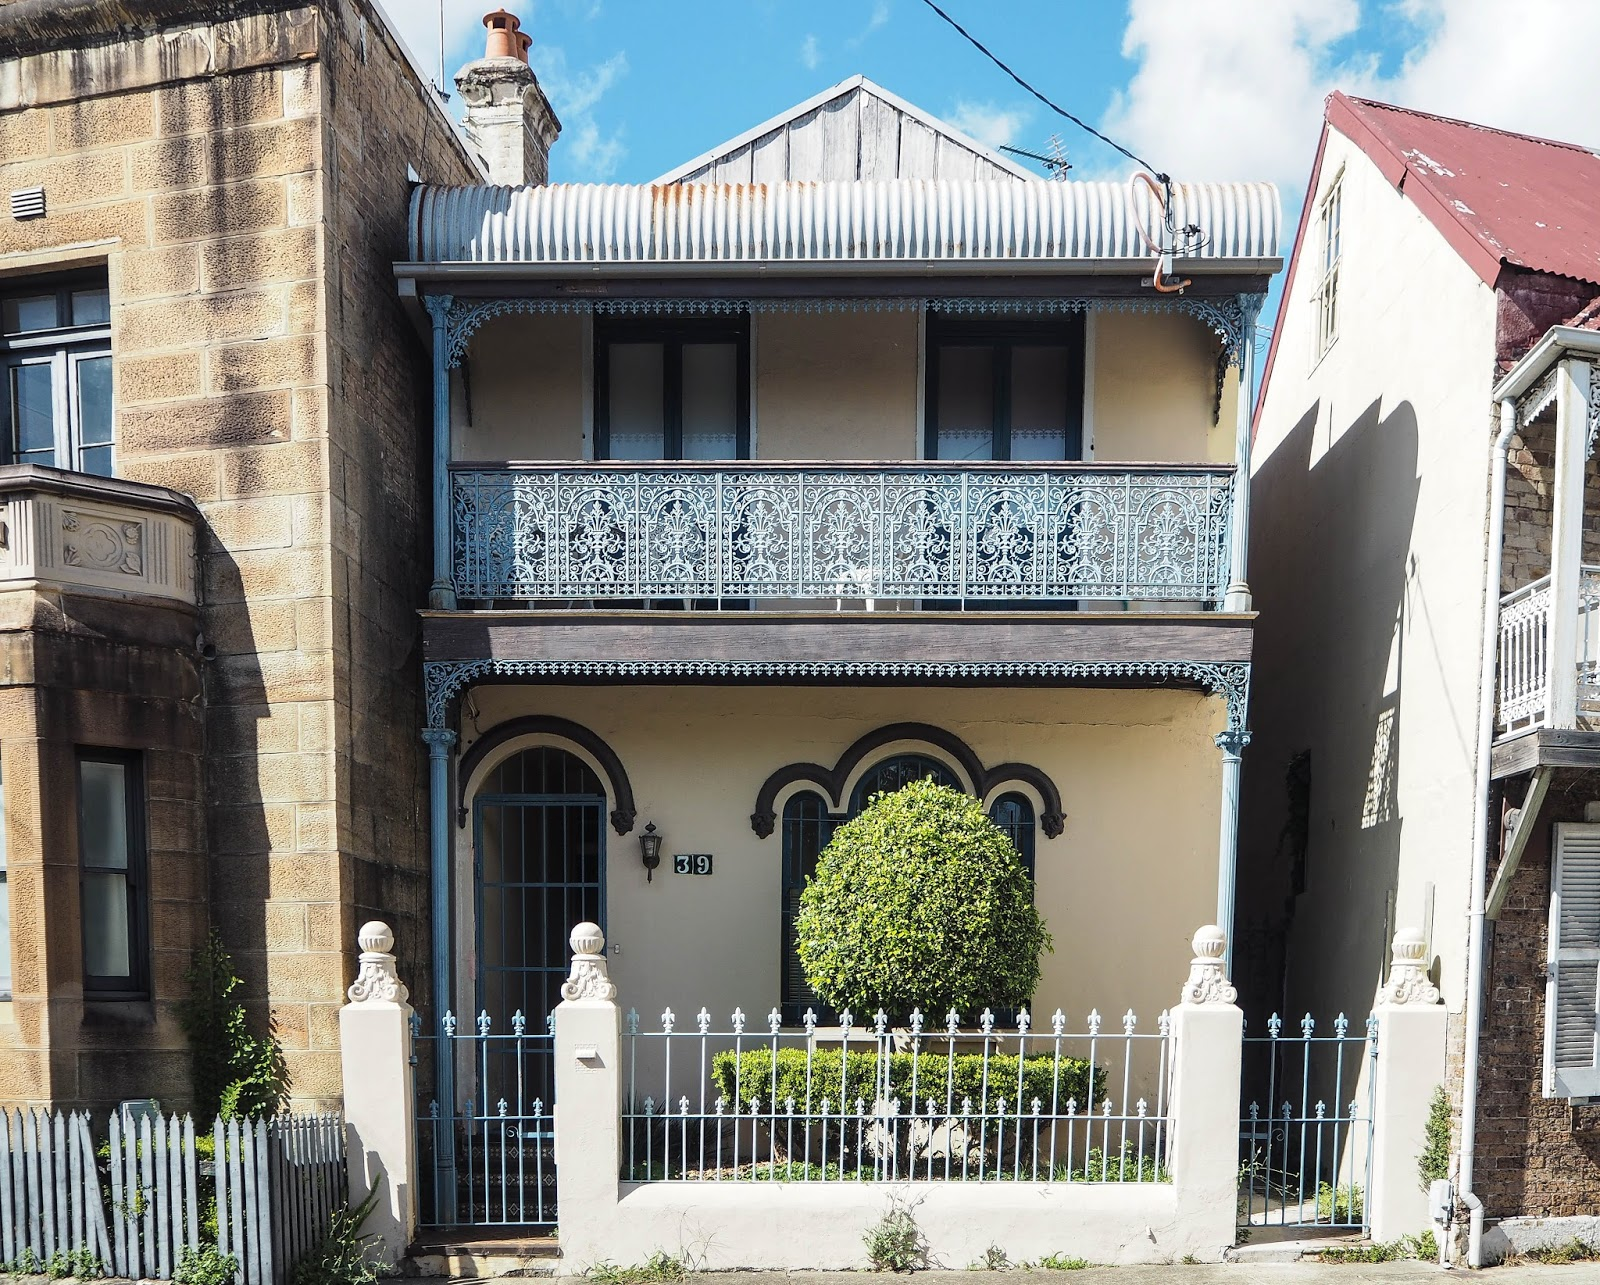 Terraced houses in Paddington, Sydney